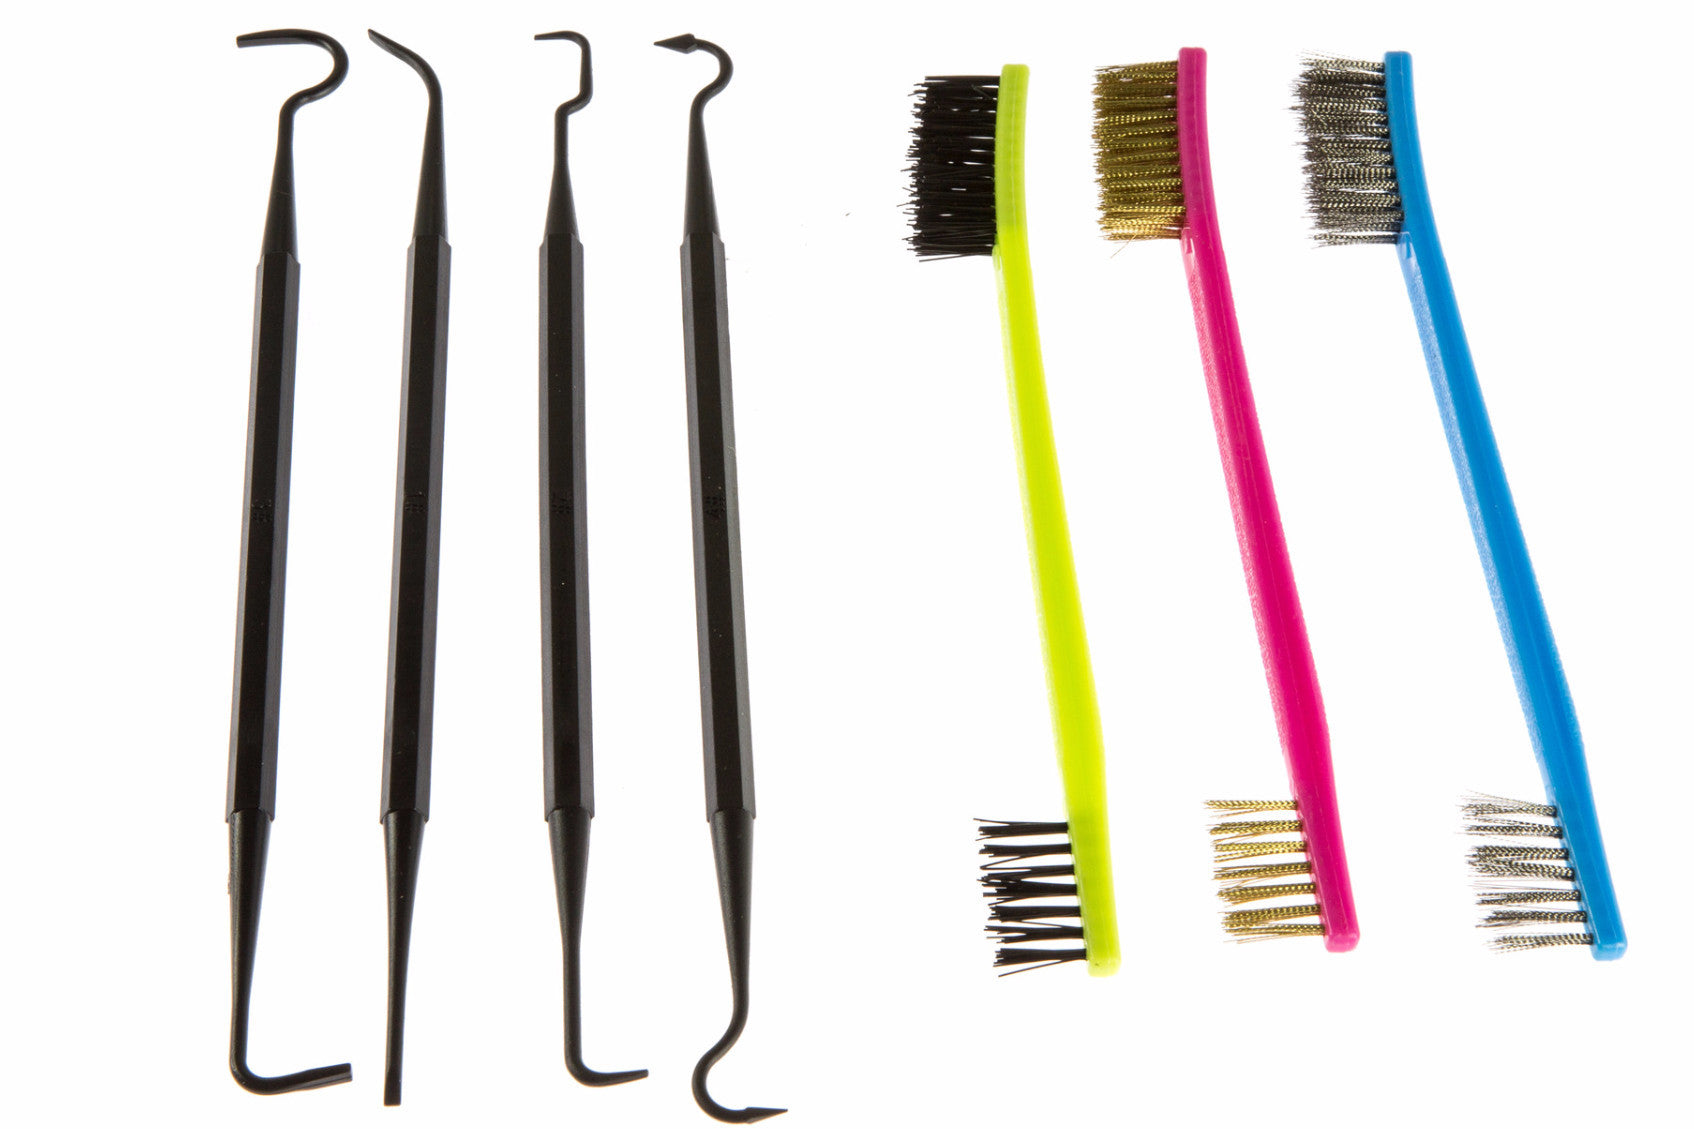 7 pc Gun Cleaning kit - picks and brushes